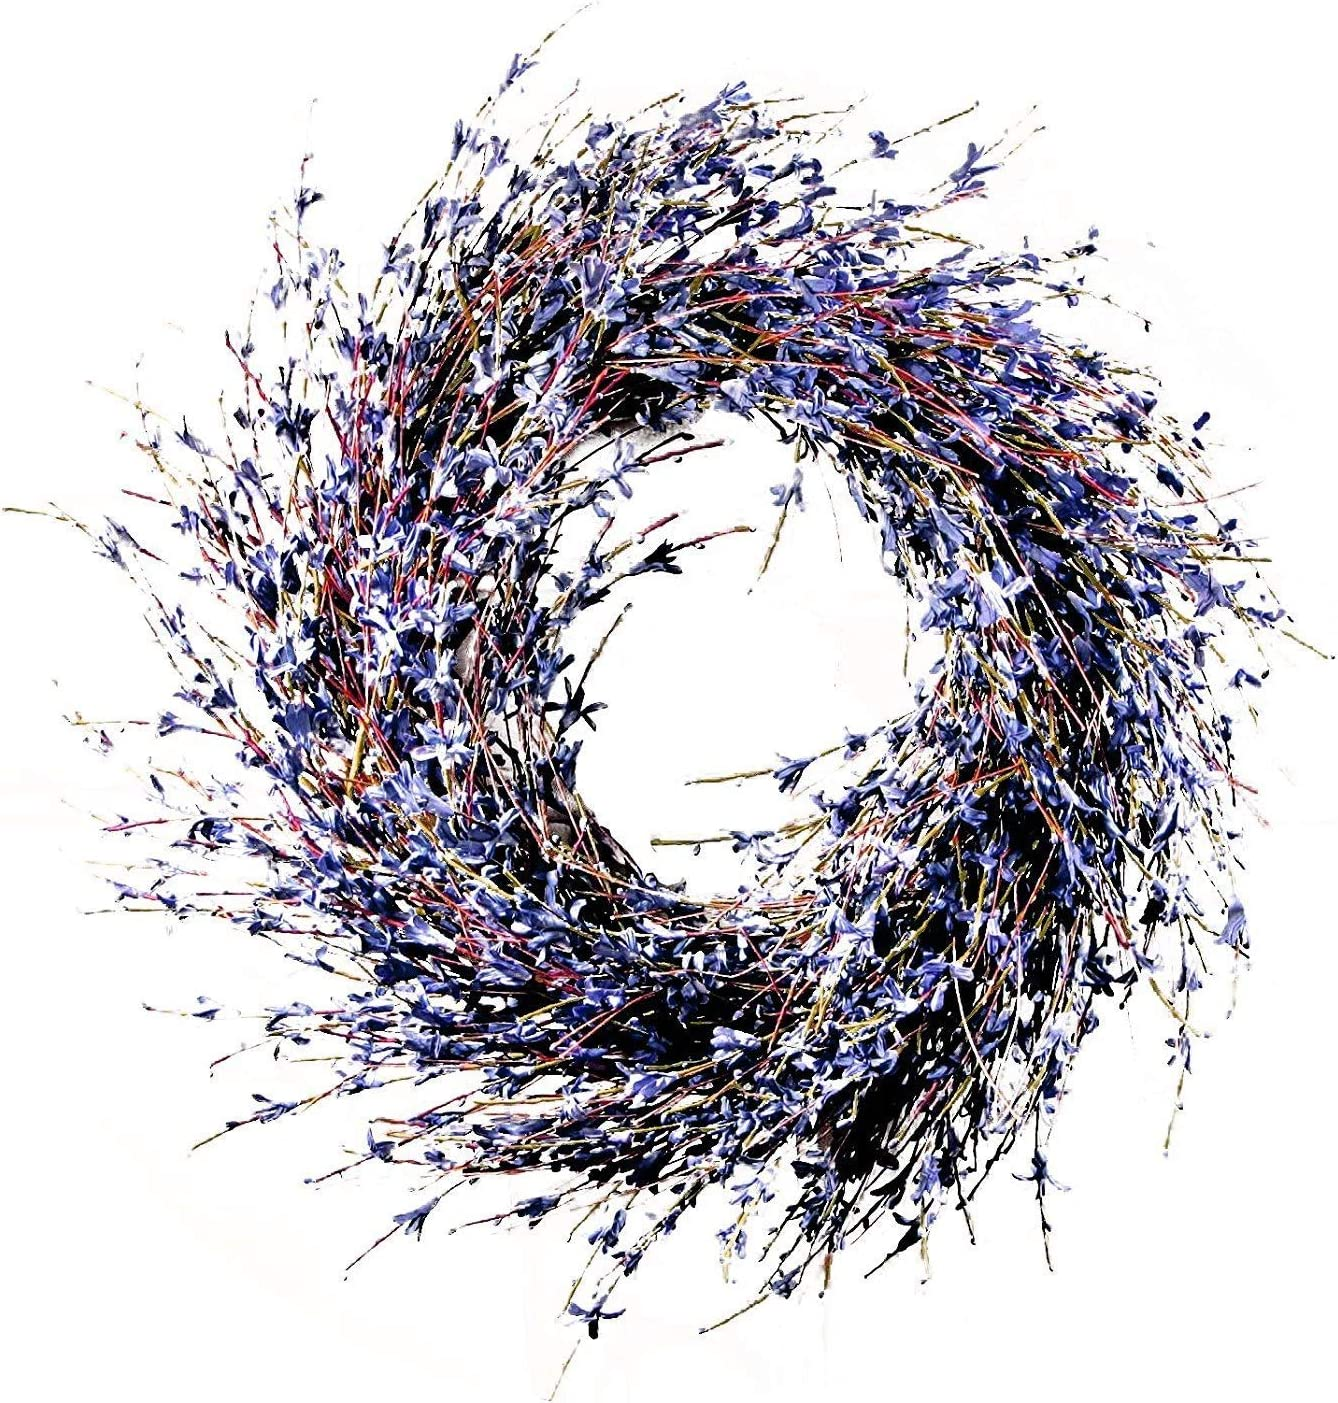 Charm & Chic 10047 Faux Dried Lavender Floral Door Wreath Natural for Fall Front Door or Indoor Home Decor